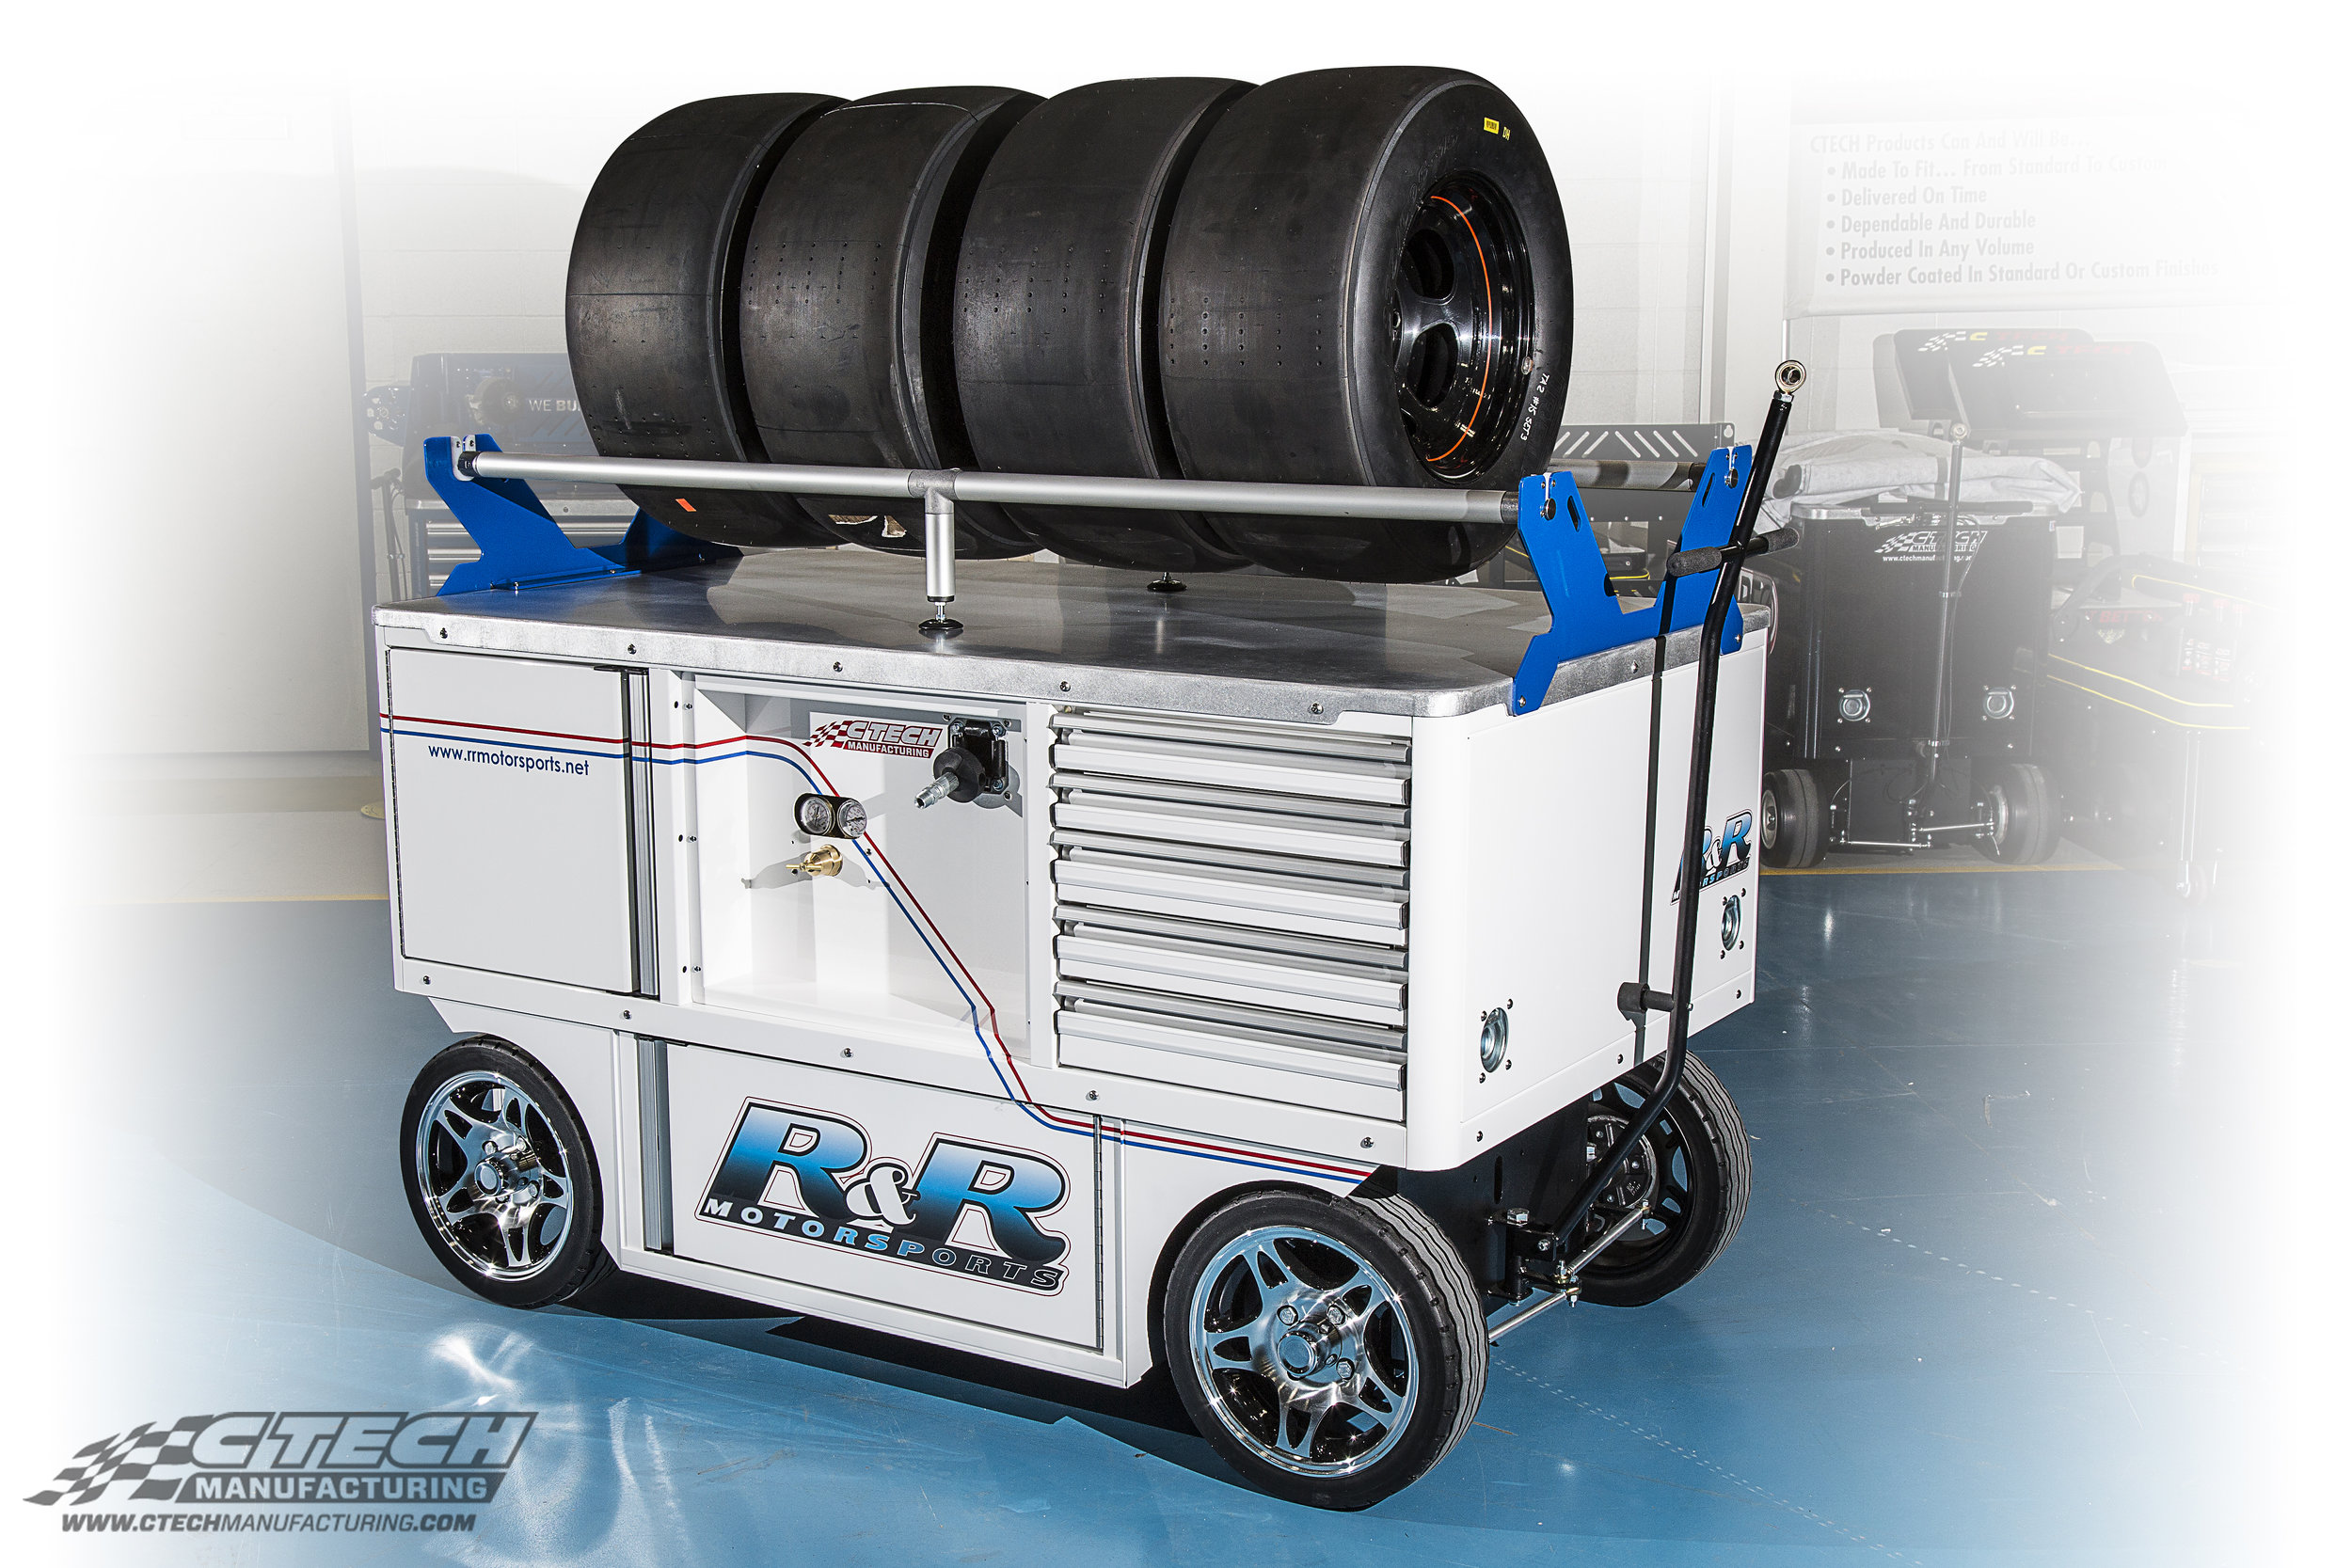 There's a large variety of upgrades, options, and accessories available to all standard carts, including this newly introduced tire rack that easily mounts on top of a Worktop Cart!